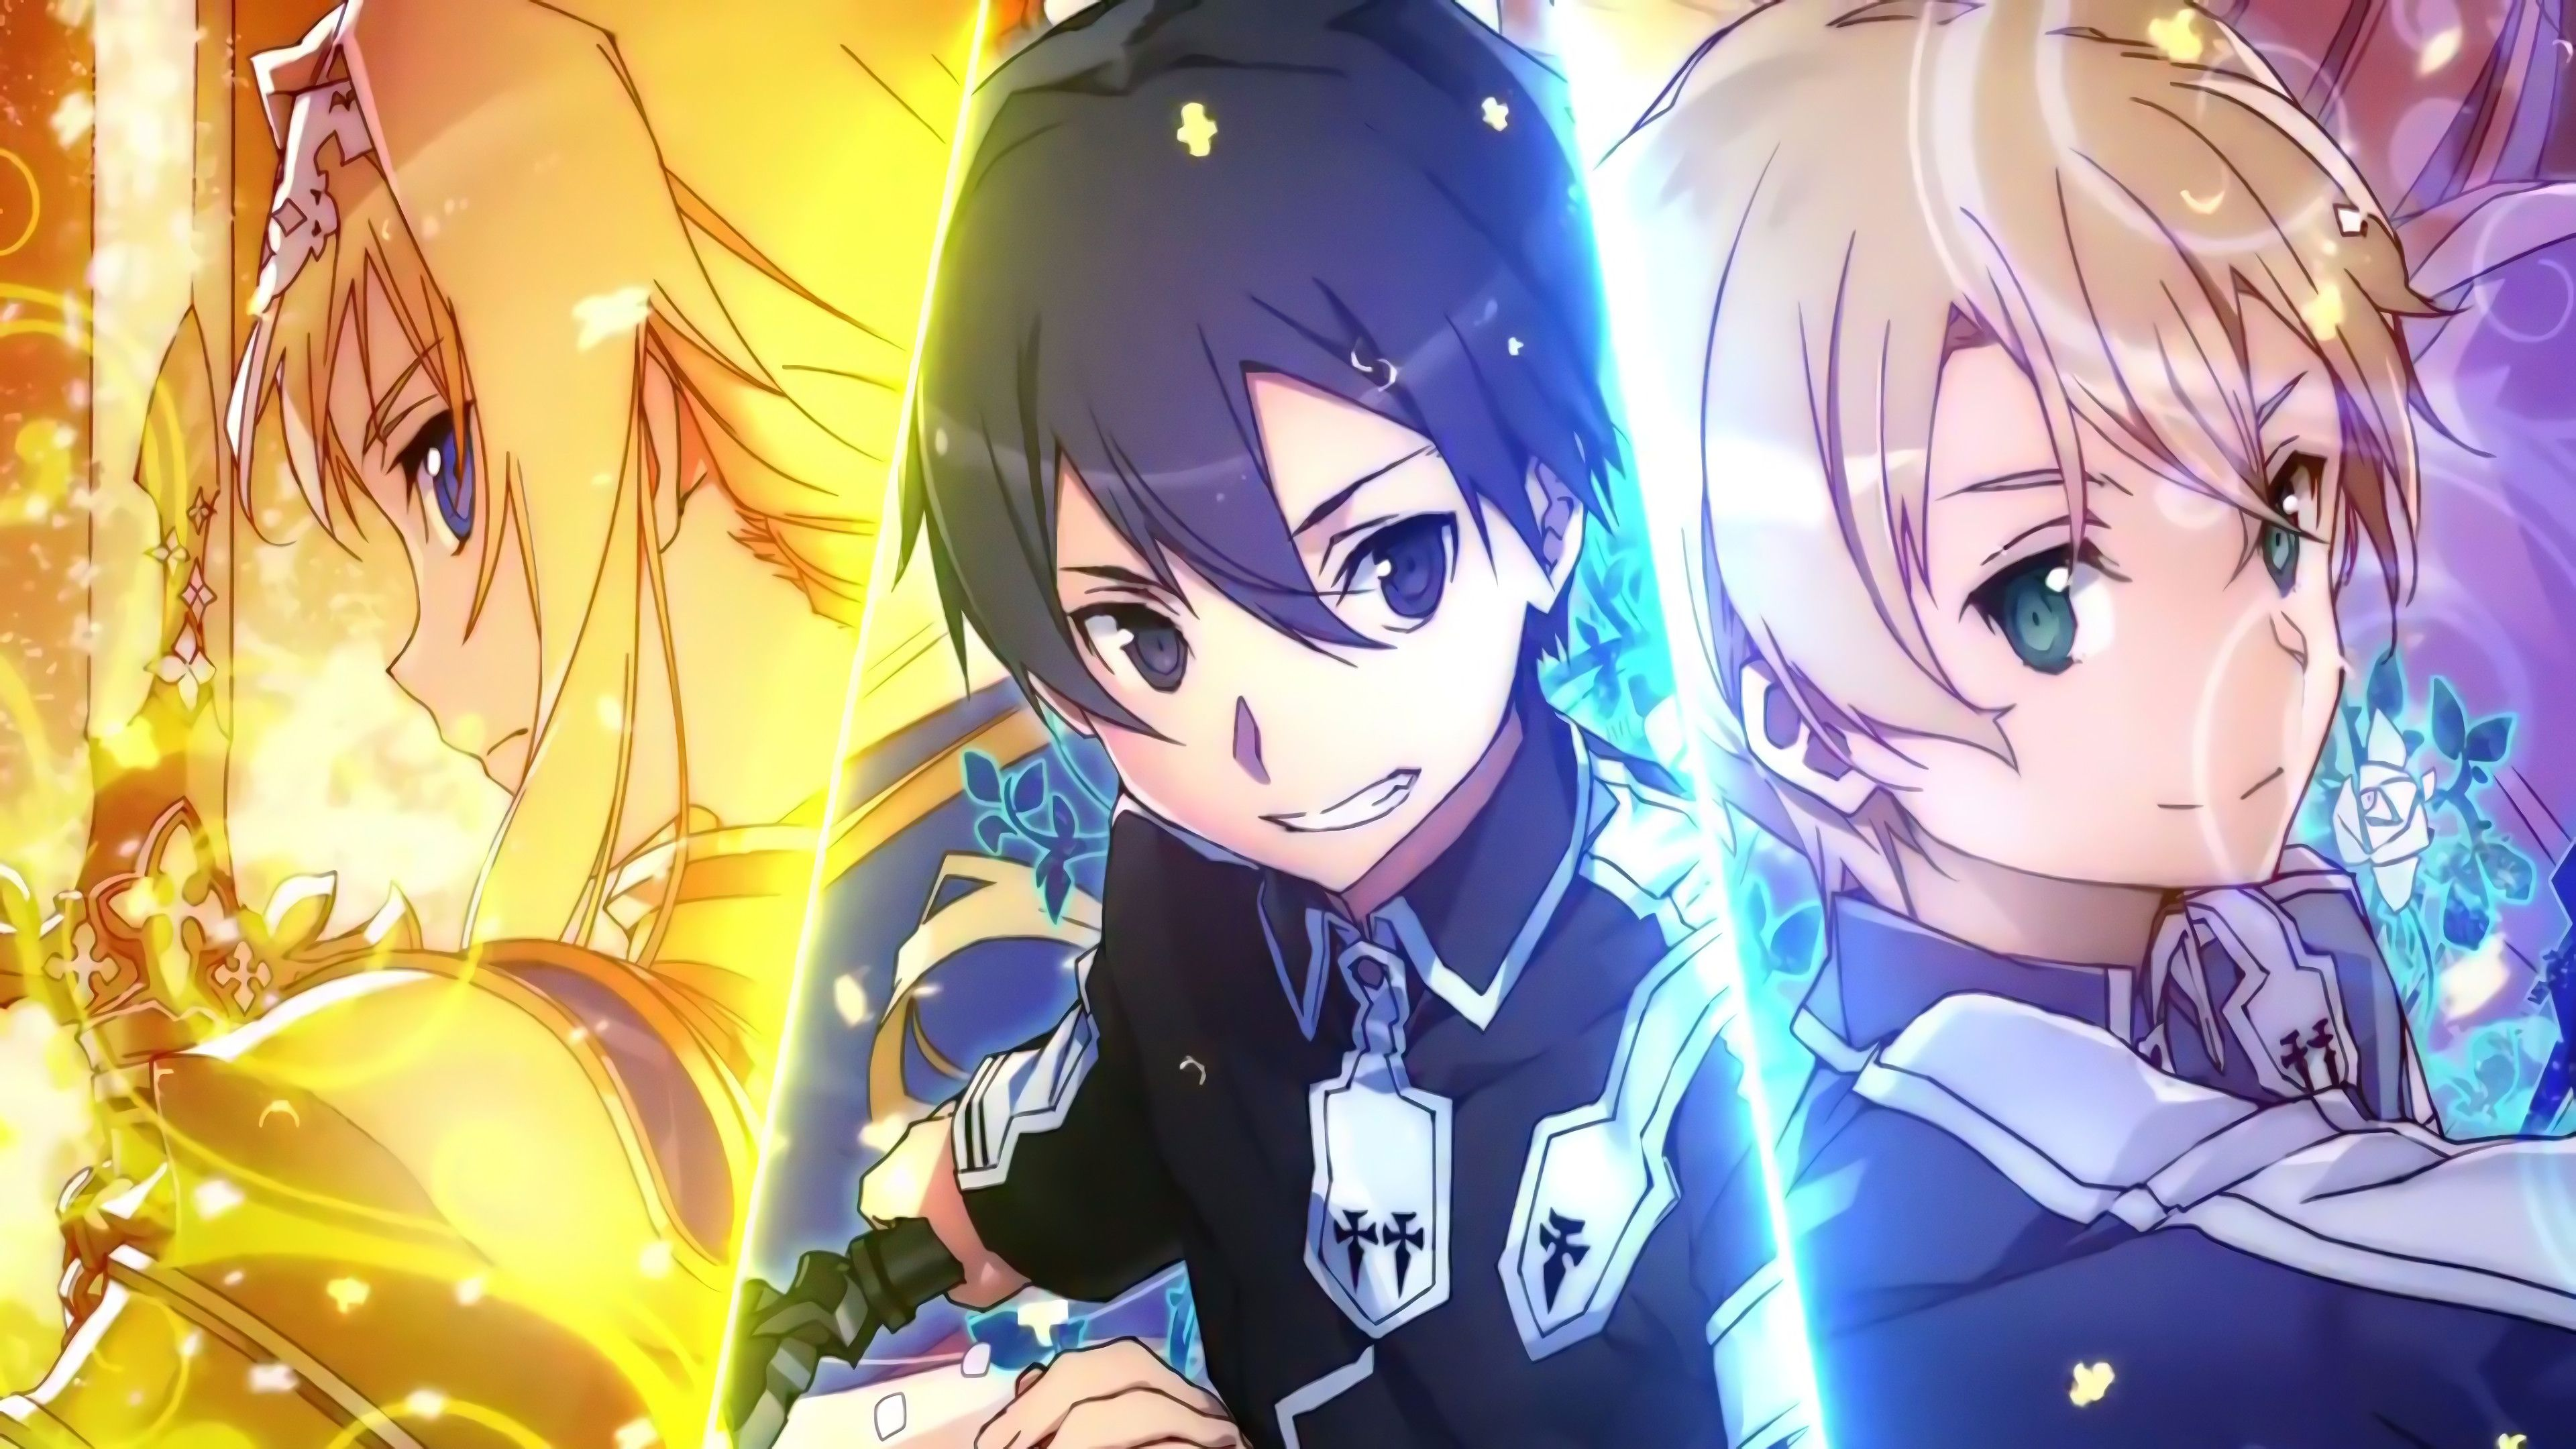 Sword Art Online Alicization Wallpapers Hd Sword Art Online Season Sword Art Sword Art Online Wallpaper